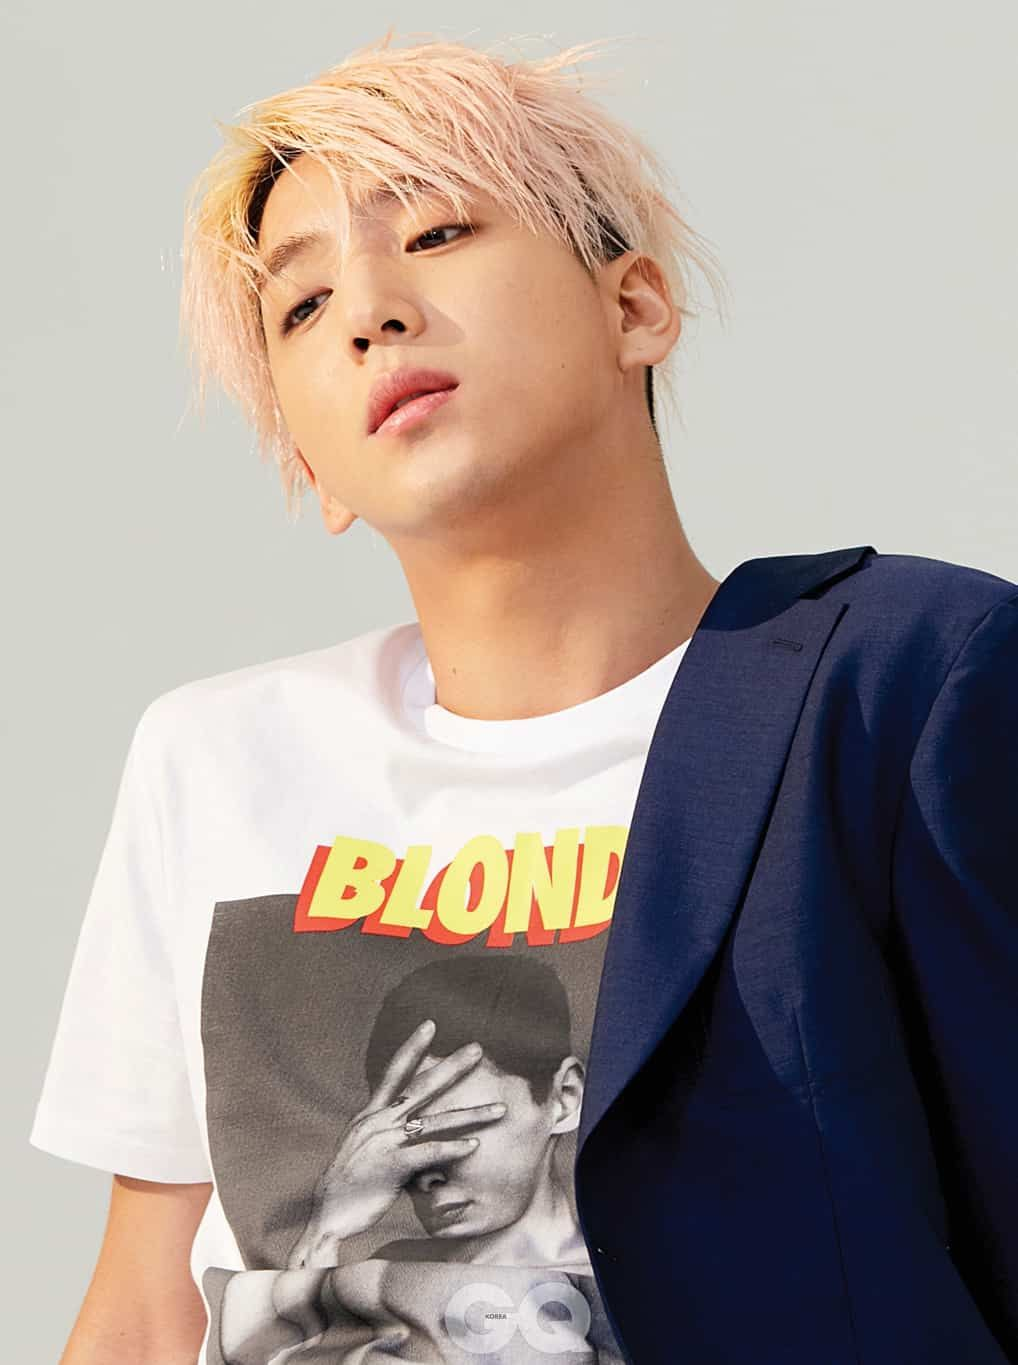 baro b1a4 gq magazine march issue �17 b1a4 ���������